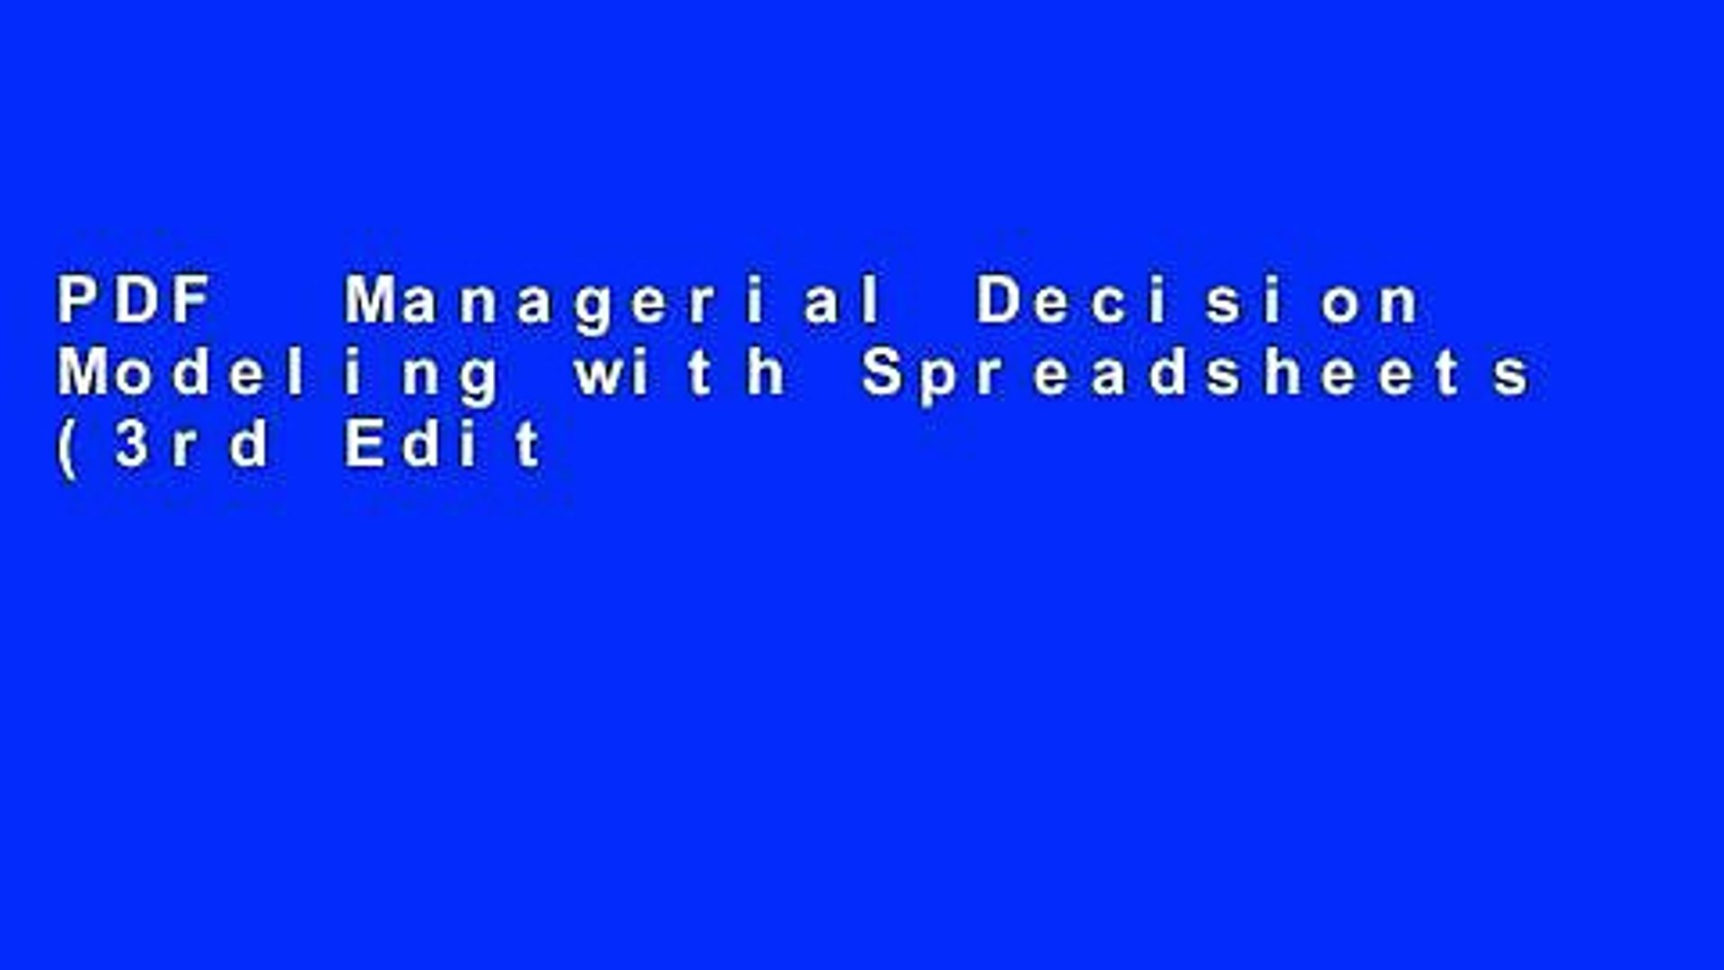 Managerial Decision Modeling With Spreadsheets 3Rd Edition Inside Pdf Managerial Decision Modeling With Spreadsheets 3Rd Edition